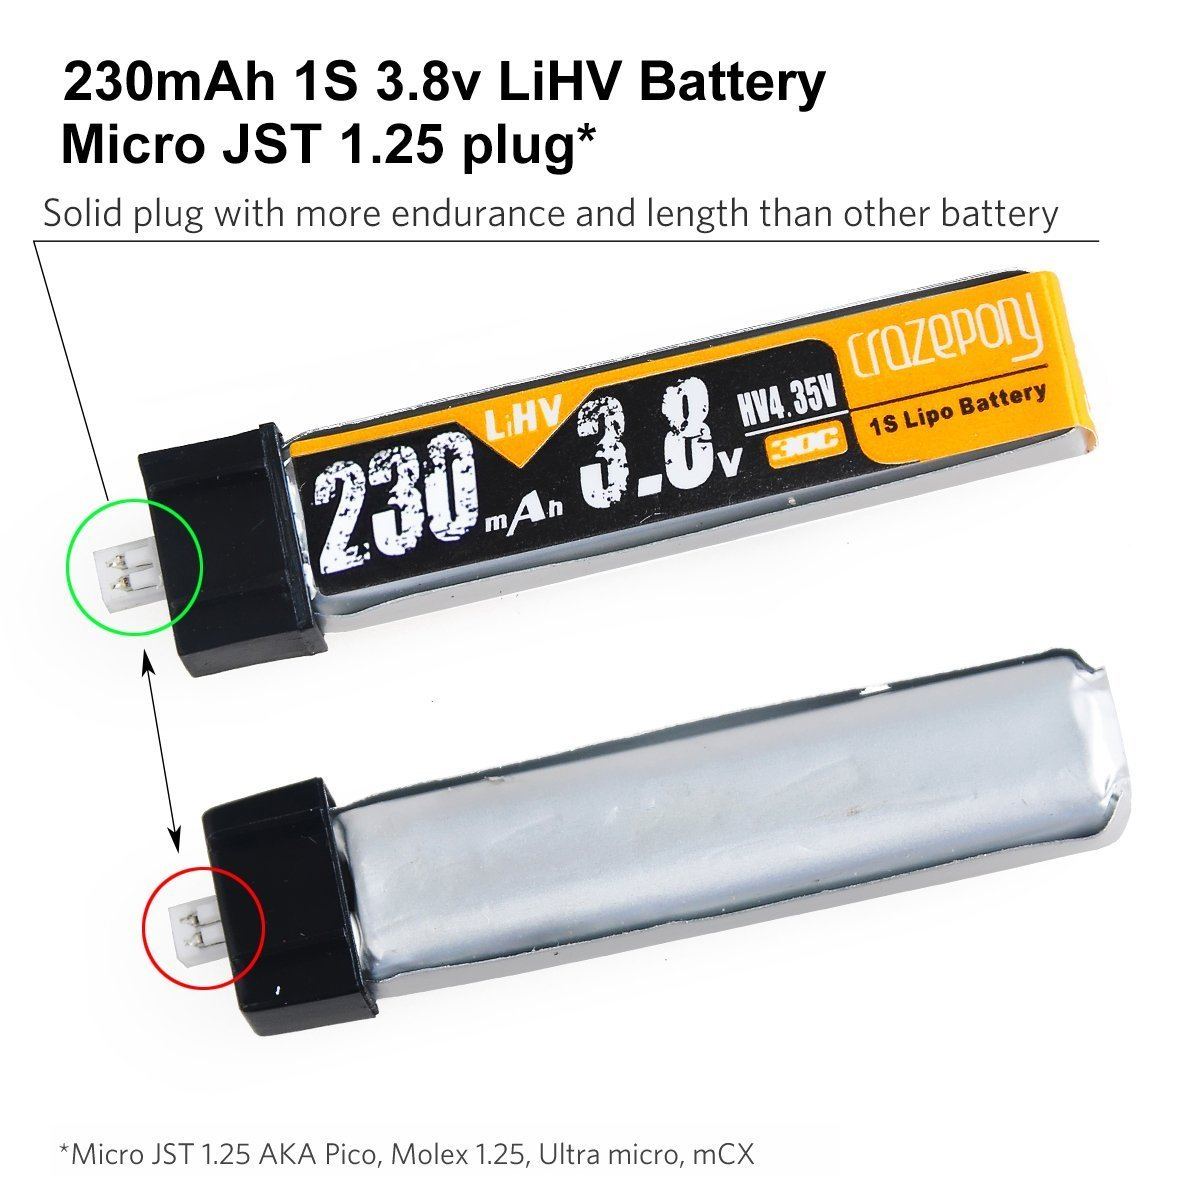 Crazepony 4pcs 230mah Hv 1s Lipo Battery 30c 38v For 350 Qx Wiring Diagram Tiny Whoop Blade Inductrix Micro Jst 125 Connector Toys Games